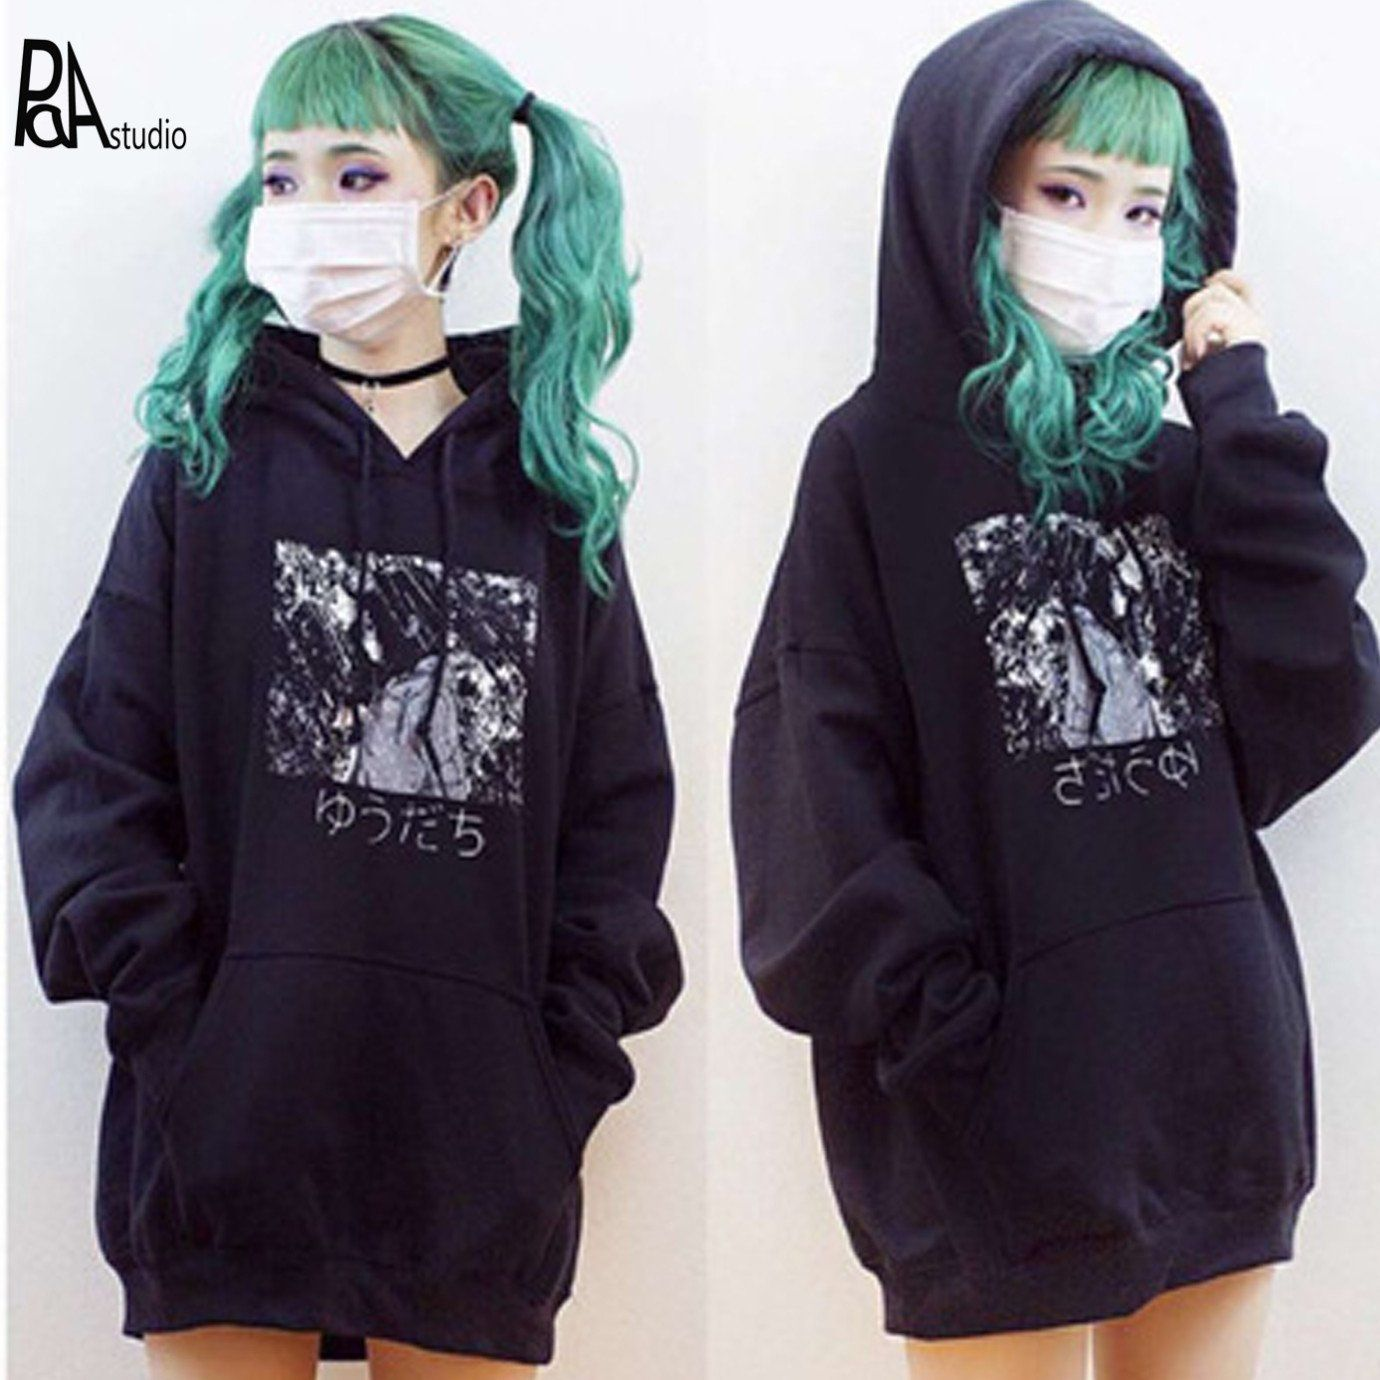 Japan Manga Anime Japanese Letter Cartoon Print Hooded Sweatshirts Tendencies Sweater Black Logo Pullover Hitam Xl Harajuku Goth Femme Men Jumper Hoodies Fleece Top